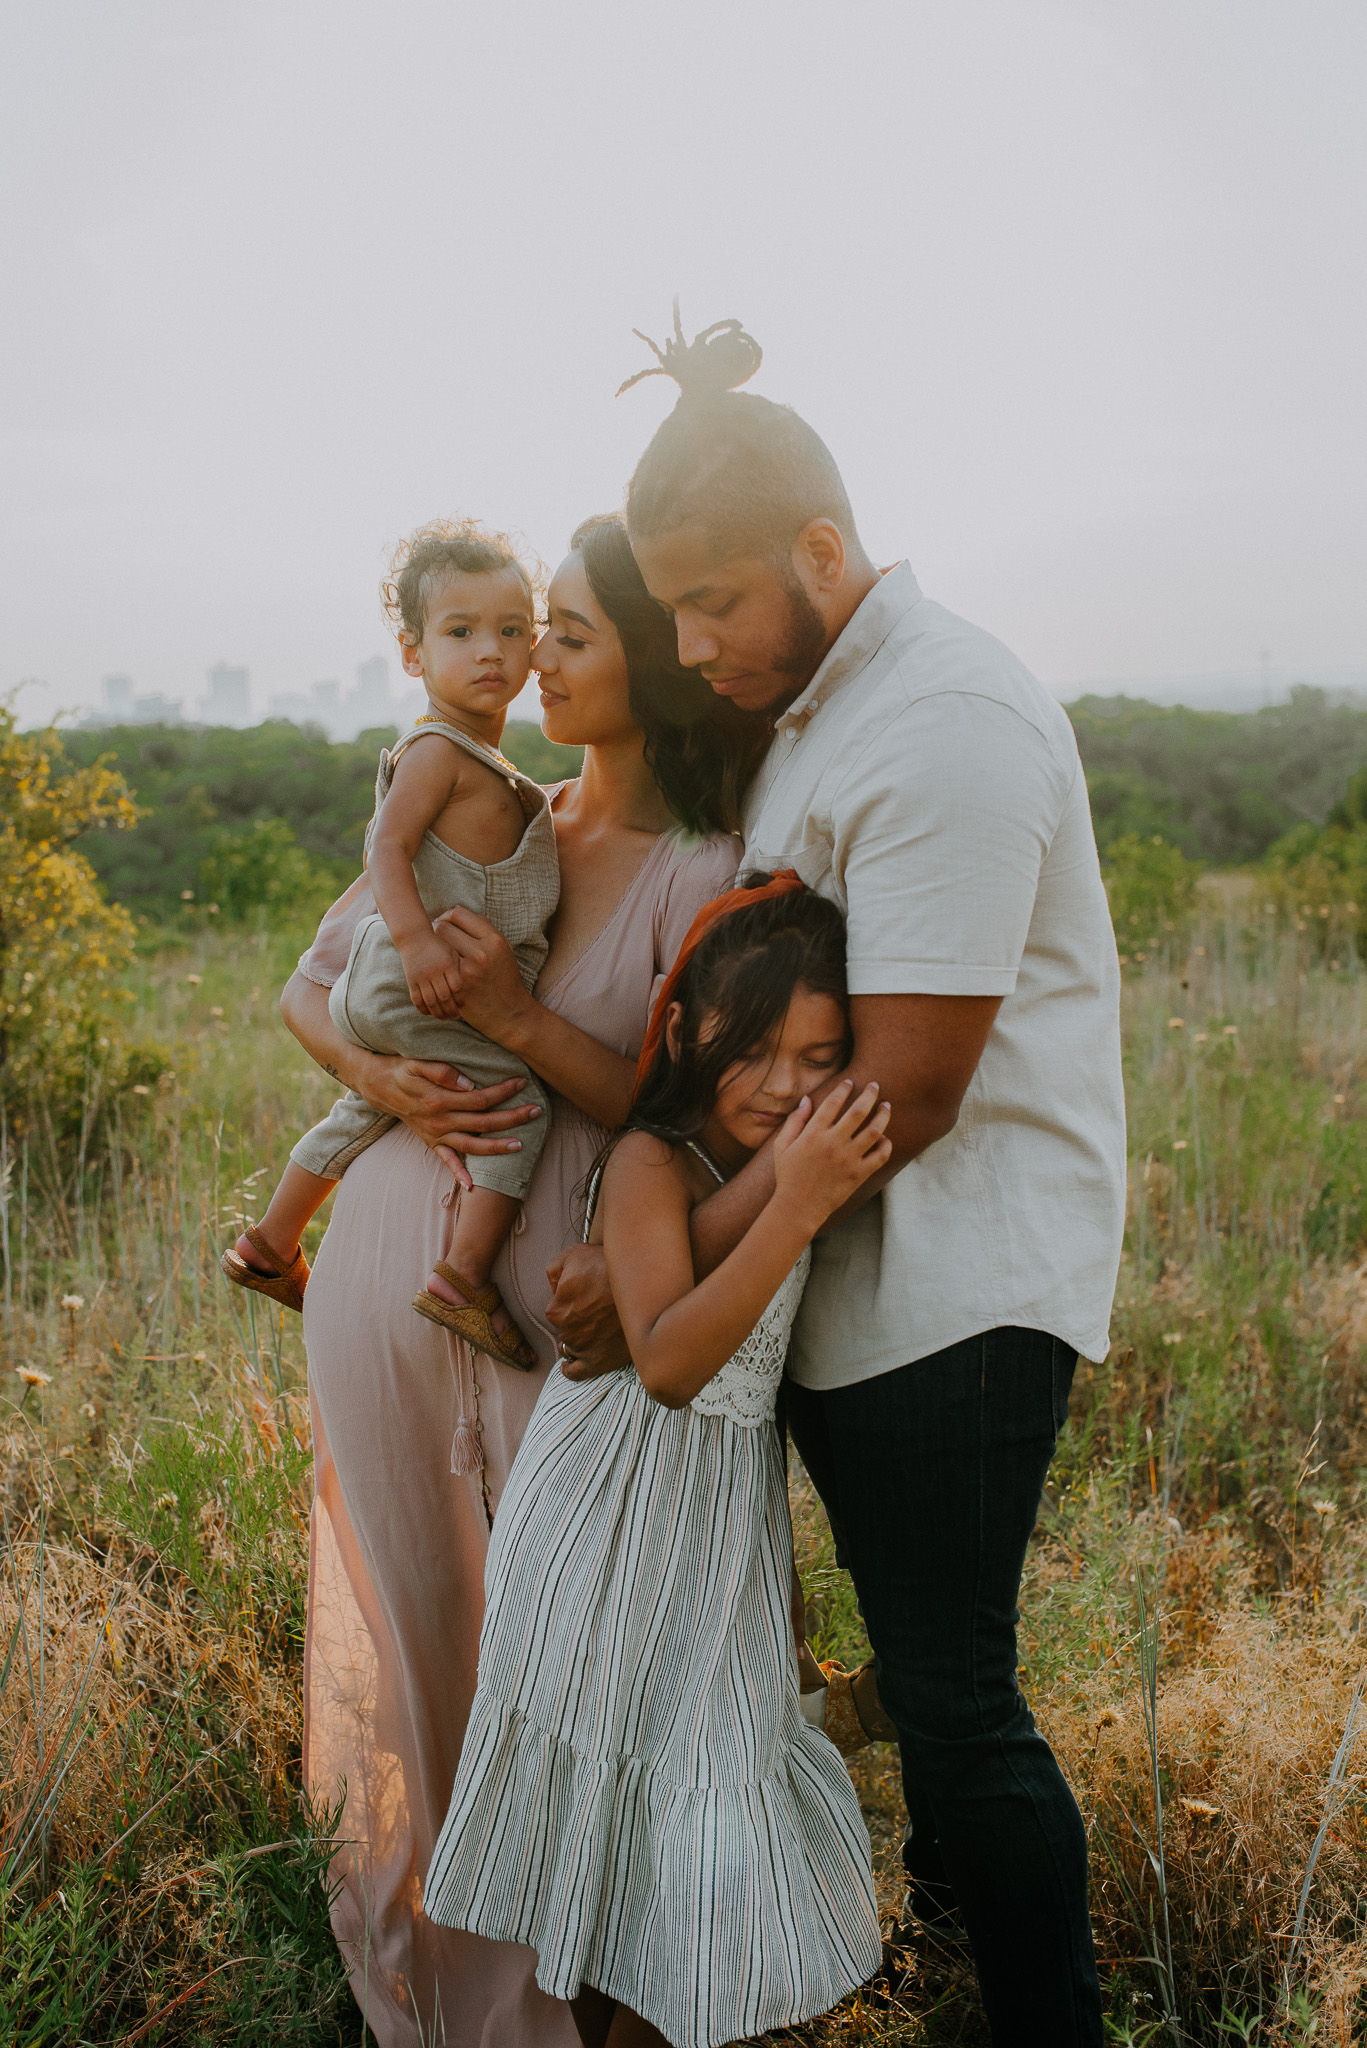 Jessi-marie-photography-dallas-fort-worth-texas-family-photographer-tandy-hills-natural-area-01